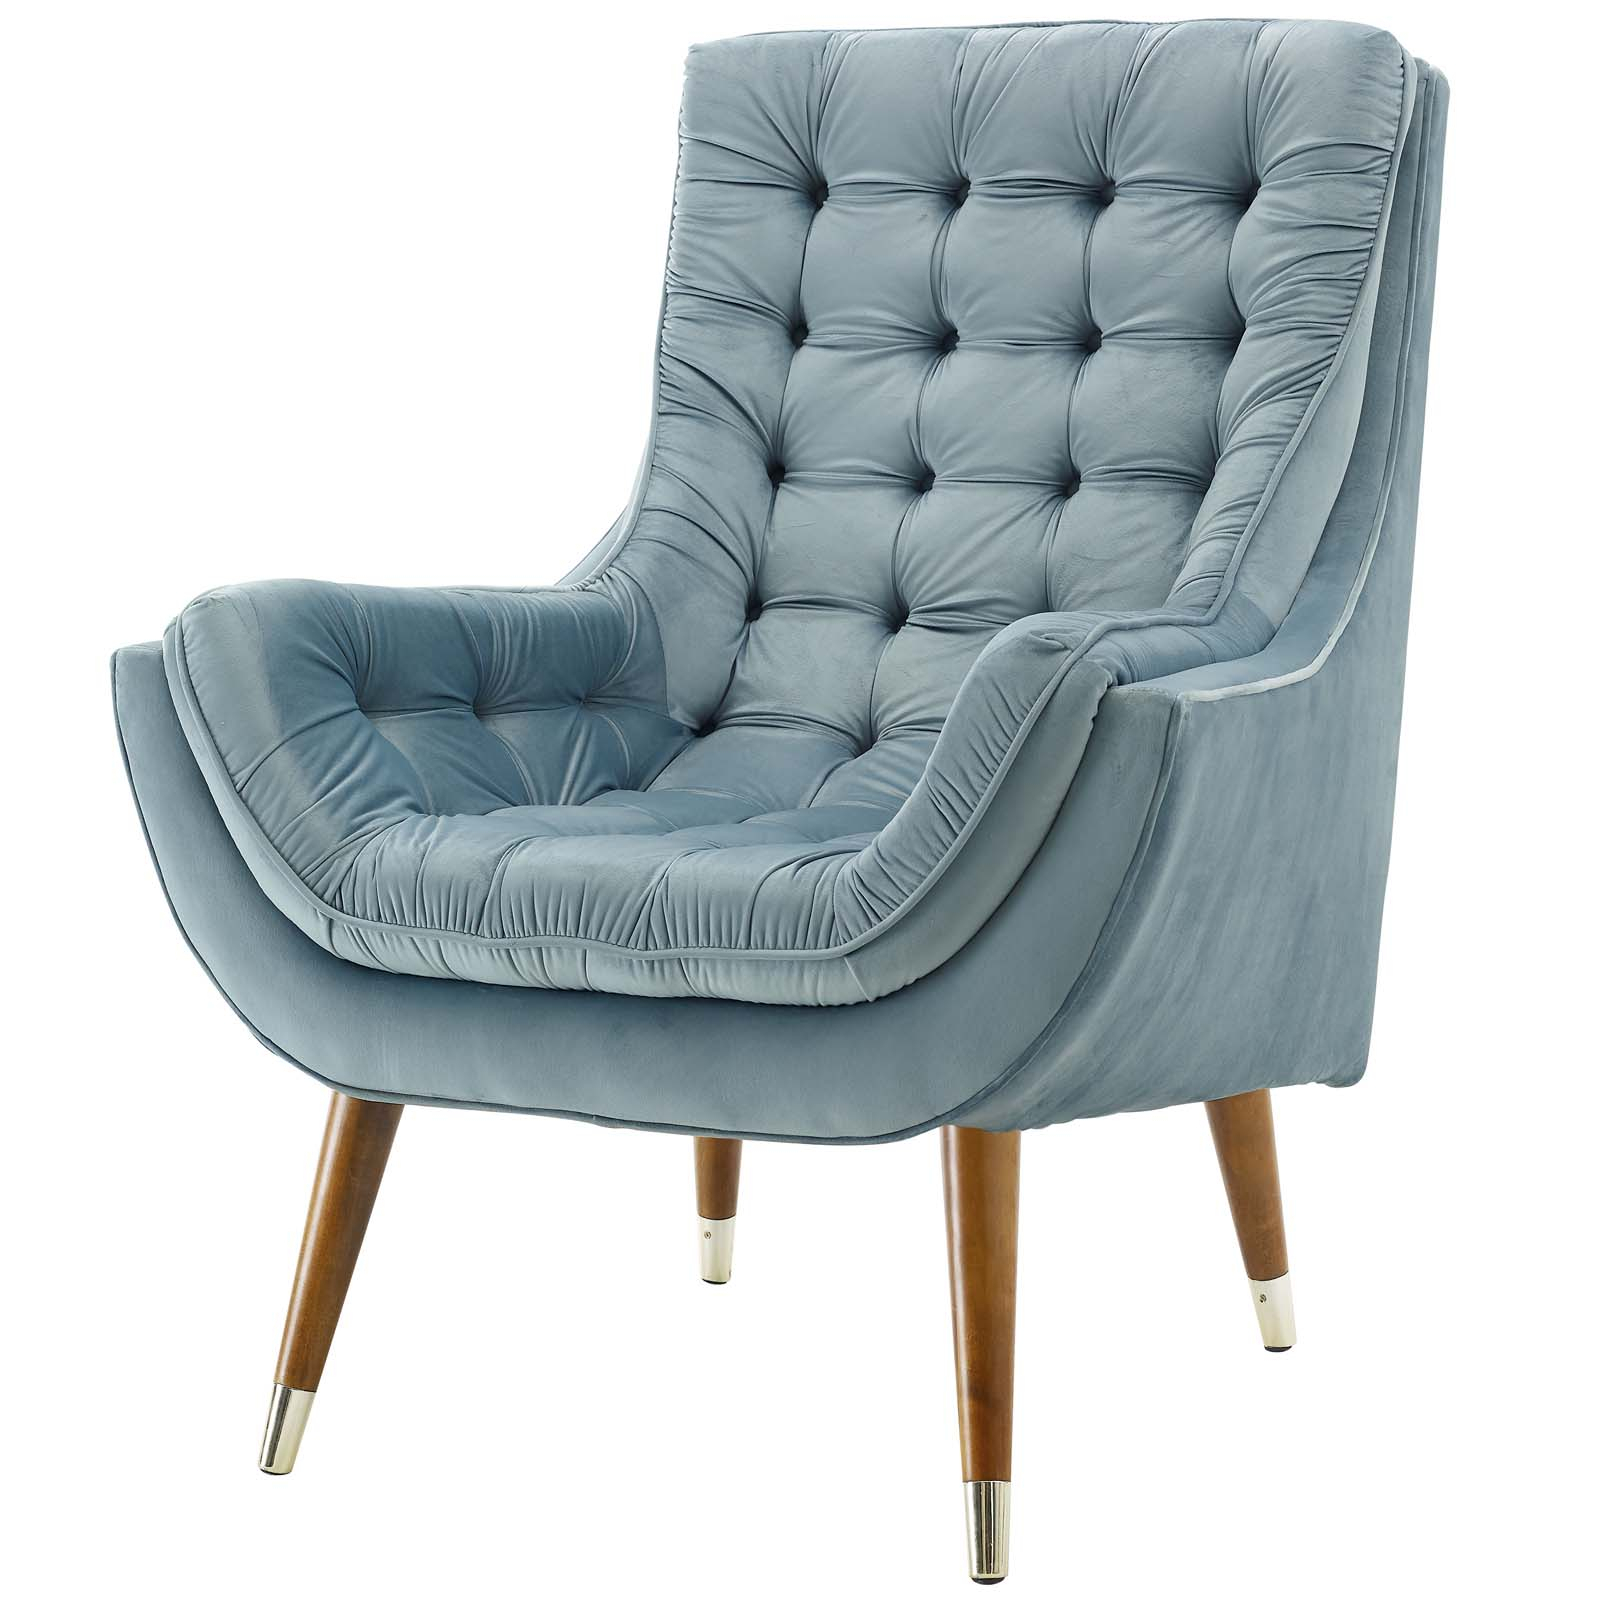 Inspiration about Details About Modern Contemporary Living Lounge Tufted Accent Chair,  Velvet, Light Blue, 15491 Intended For Velvet Tufted Accent Chairs (#15 of 20)